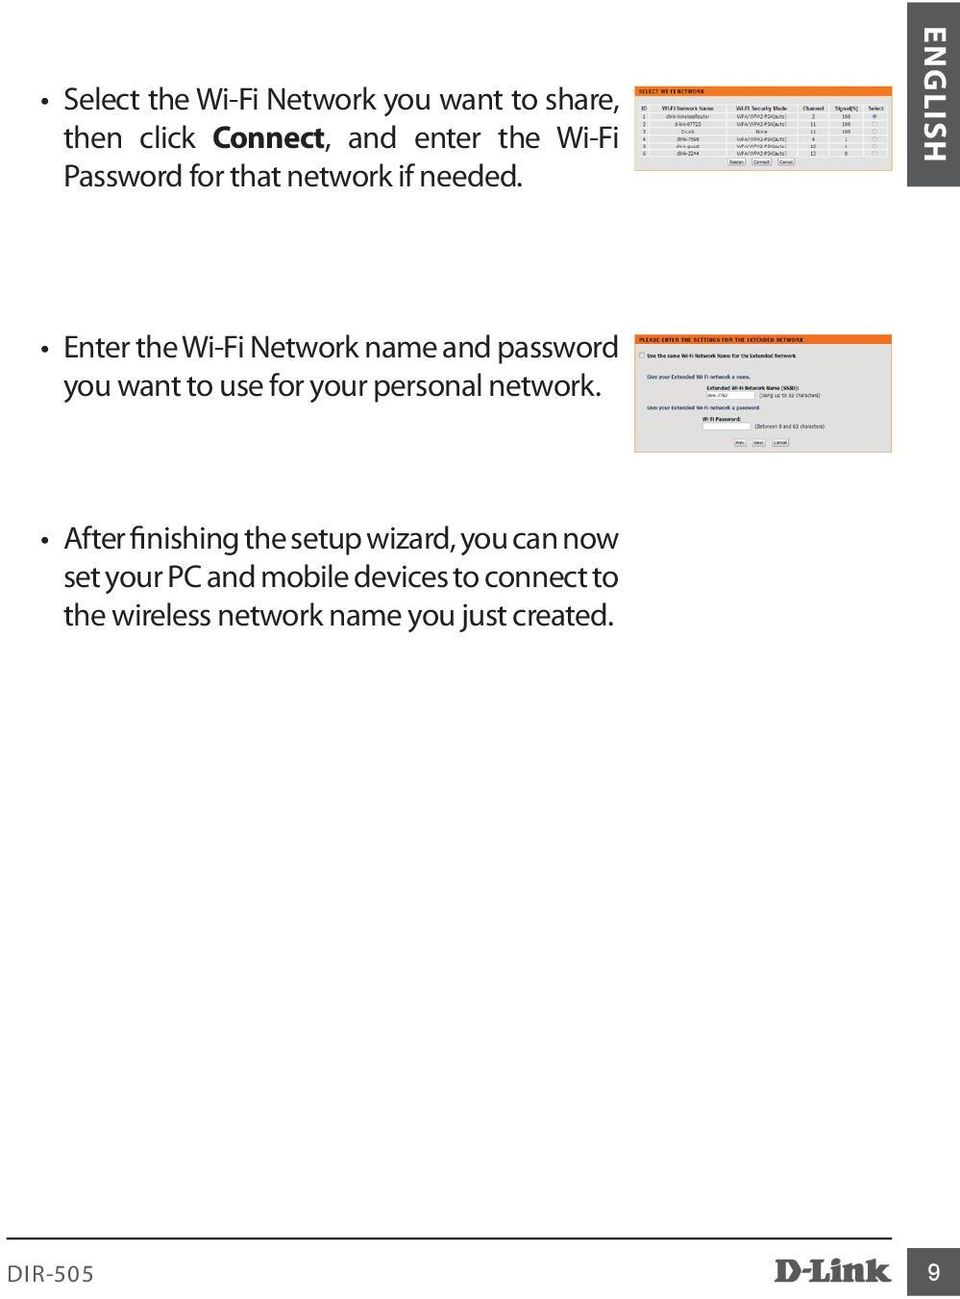 ENGLISH Enter the Wi-Fi Network name and password you want to use for your personal